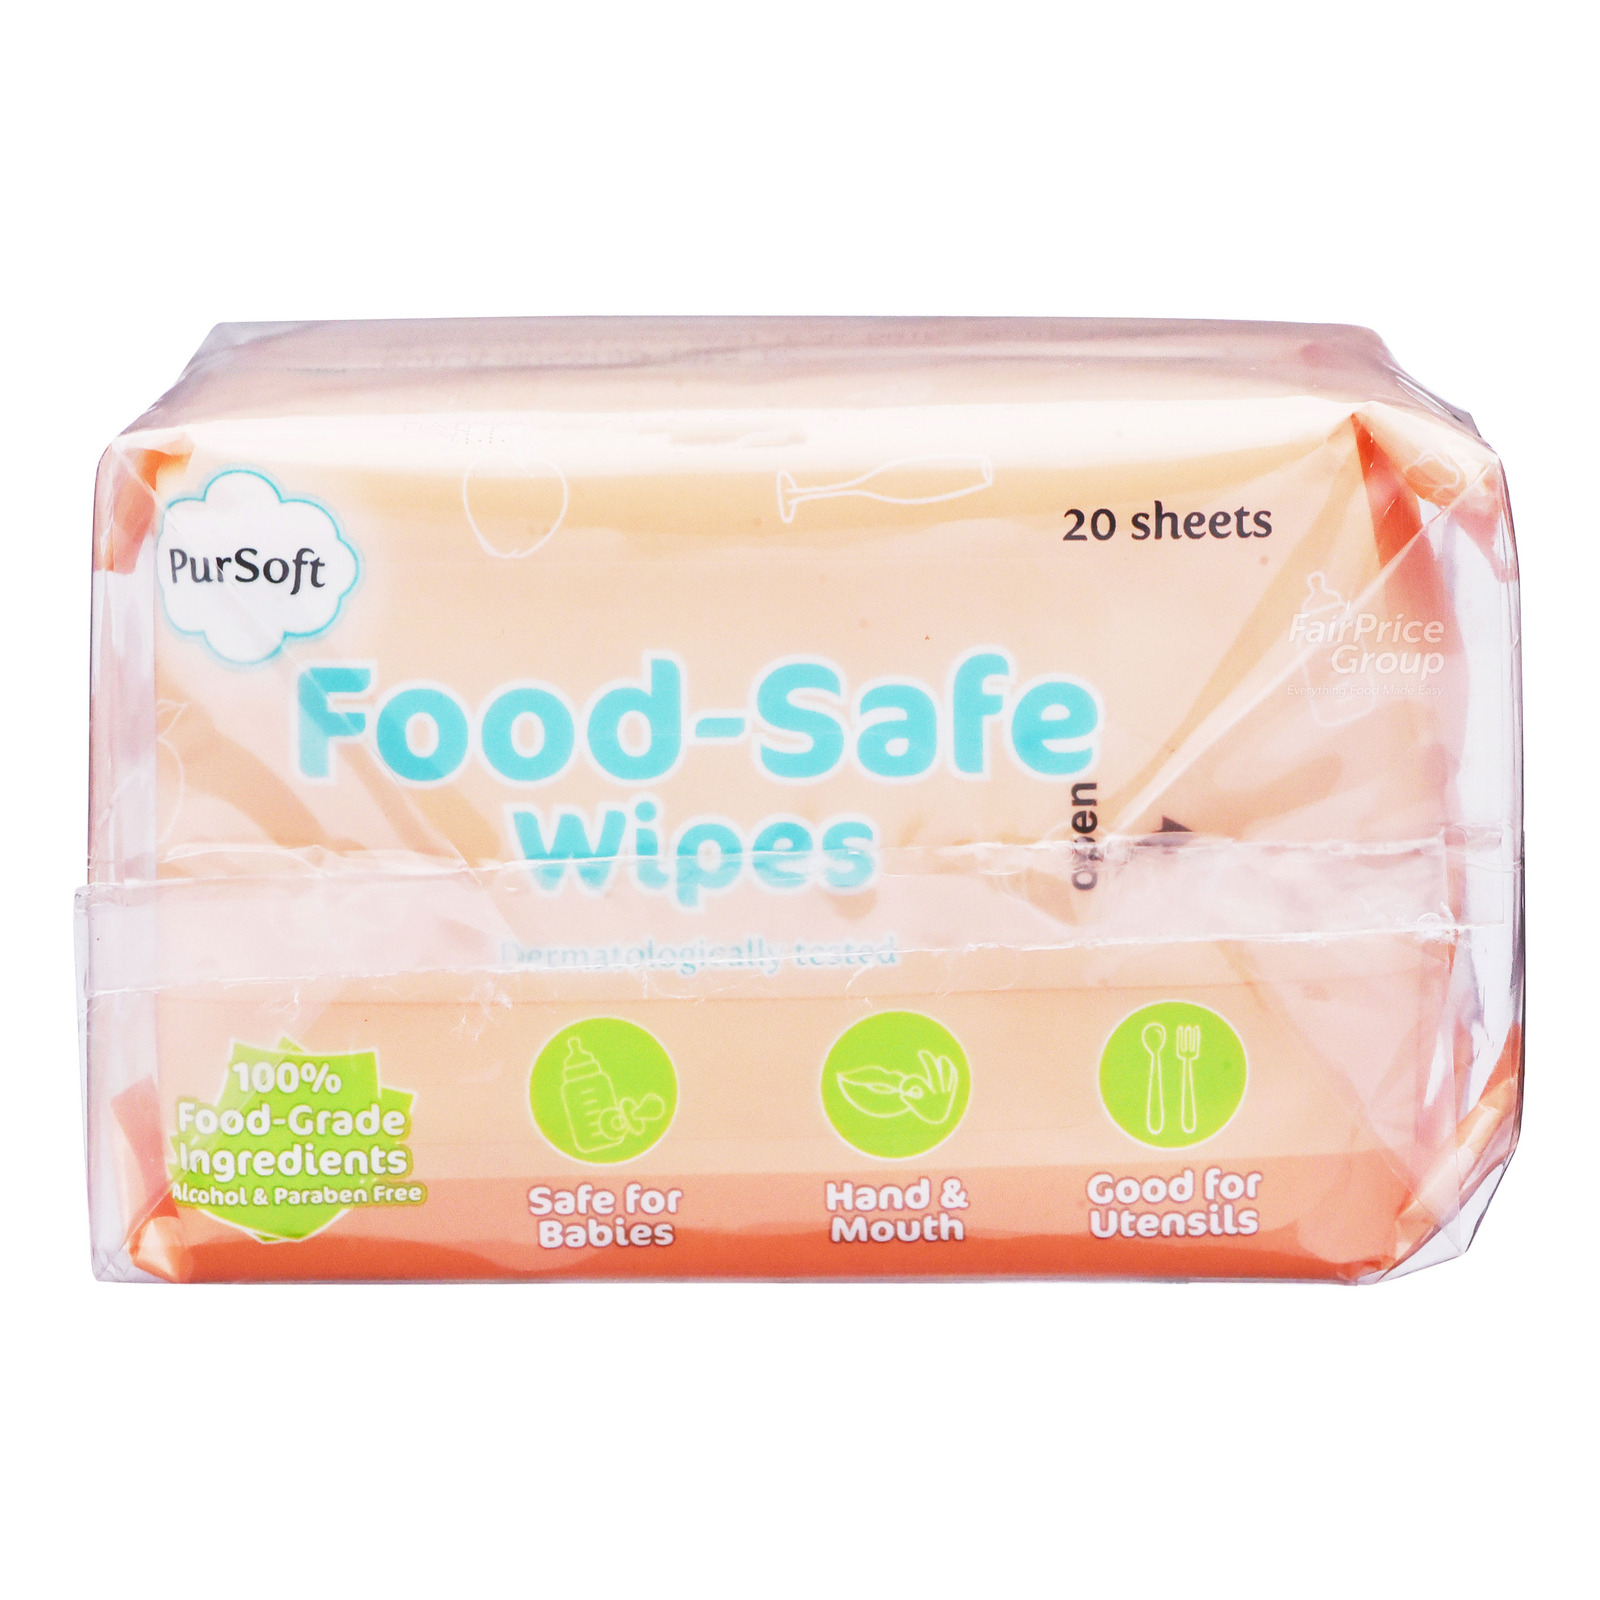 PurSoft Food-Safe Wipes